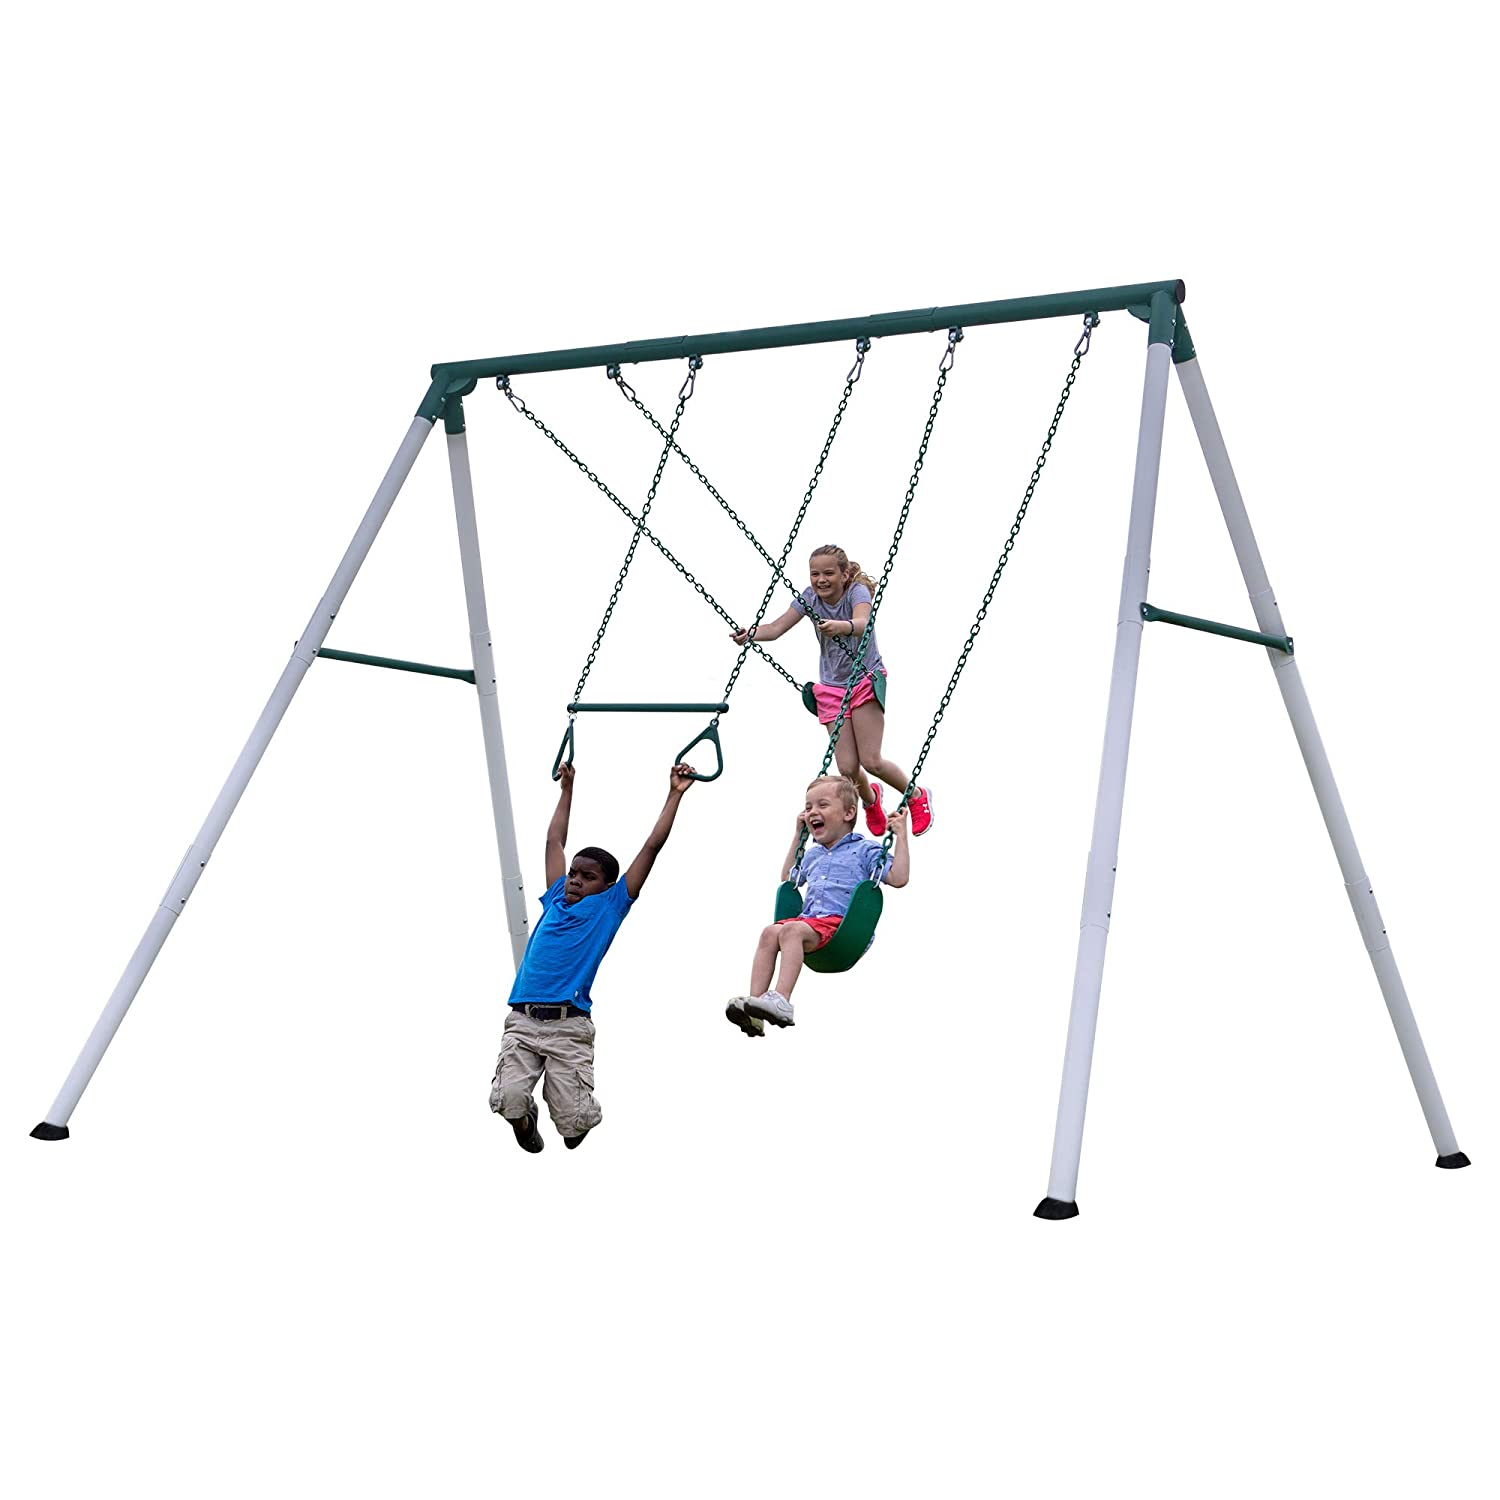 Top 6 Best Heavy Duty Swing Sets For Adults - Buying Guide ...